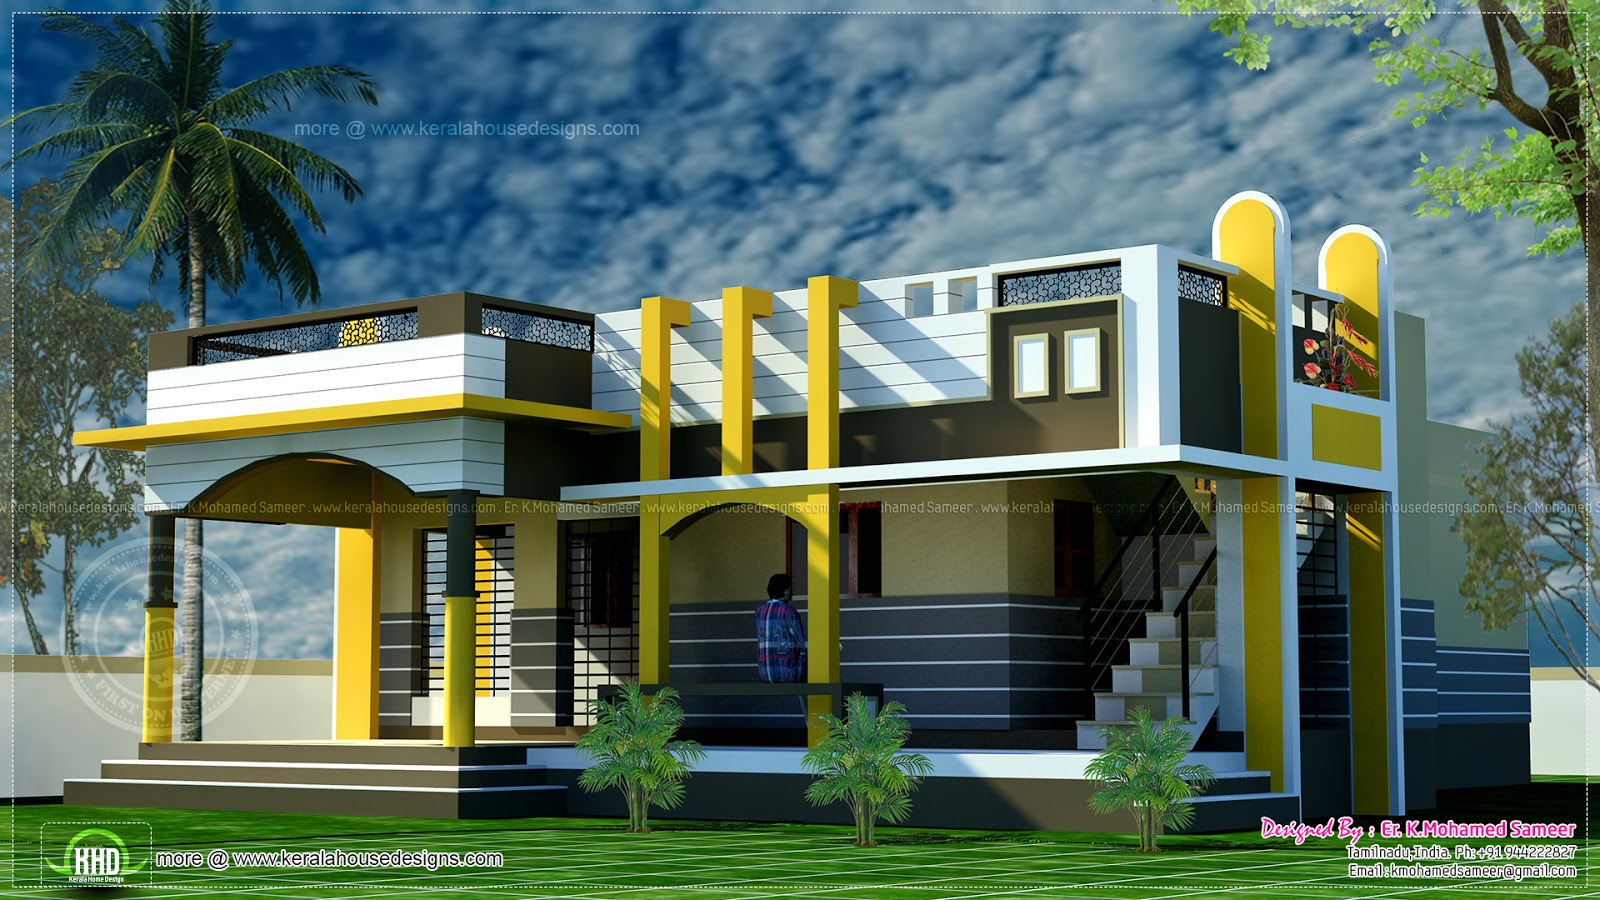 Small house design contemporary style kerala home design for Indian small house designs photos